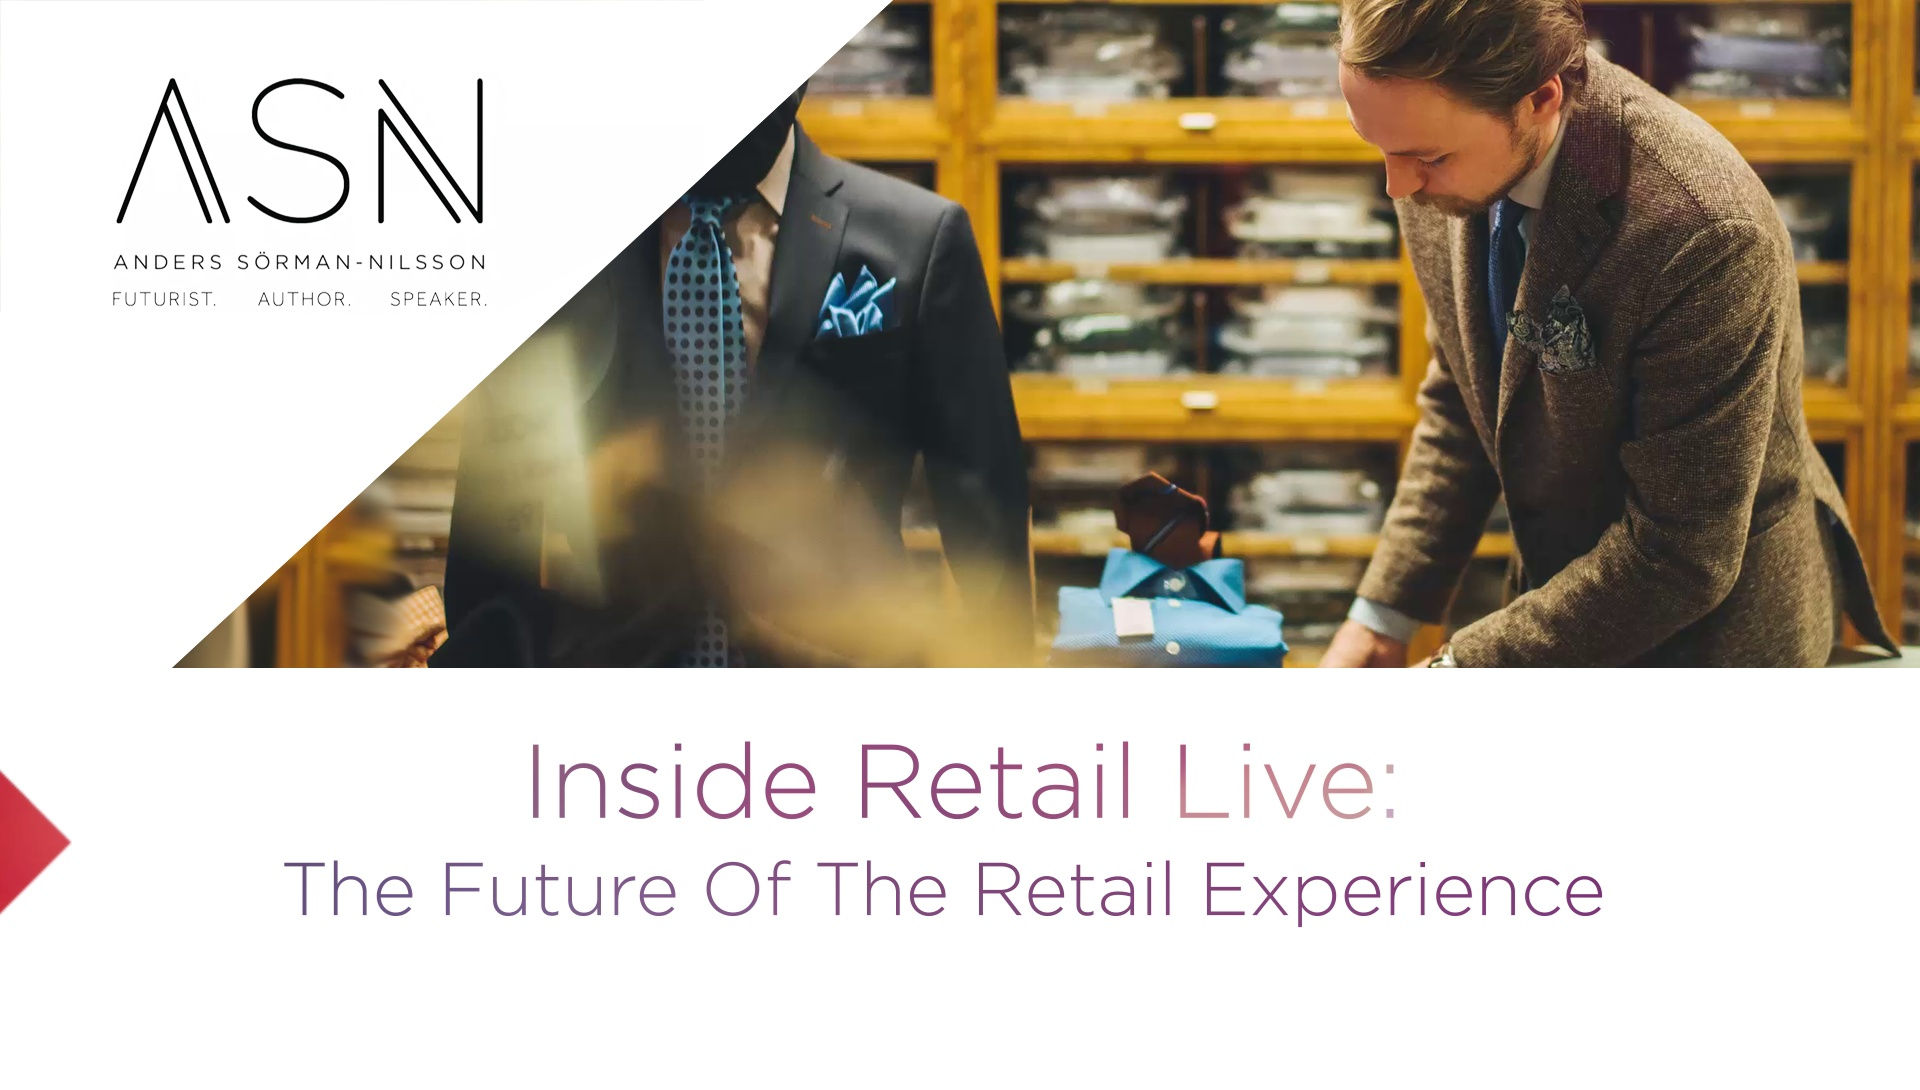 The Future of the Retail Experience